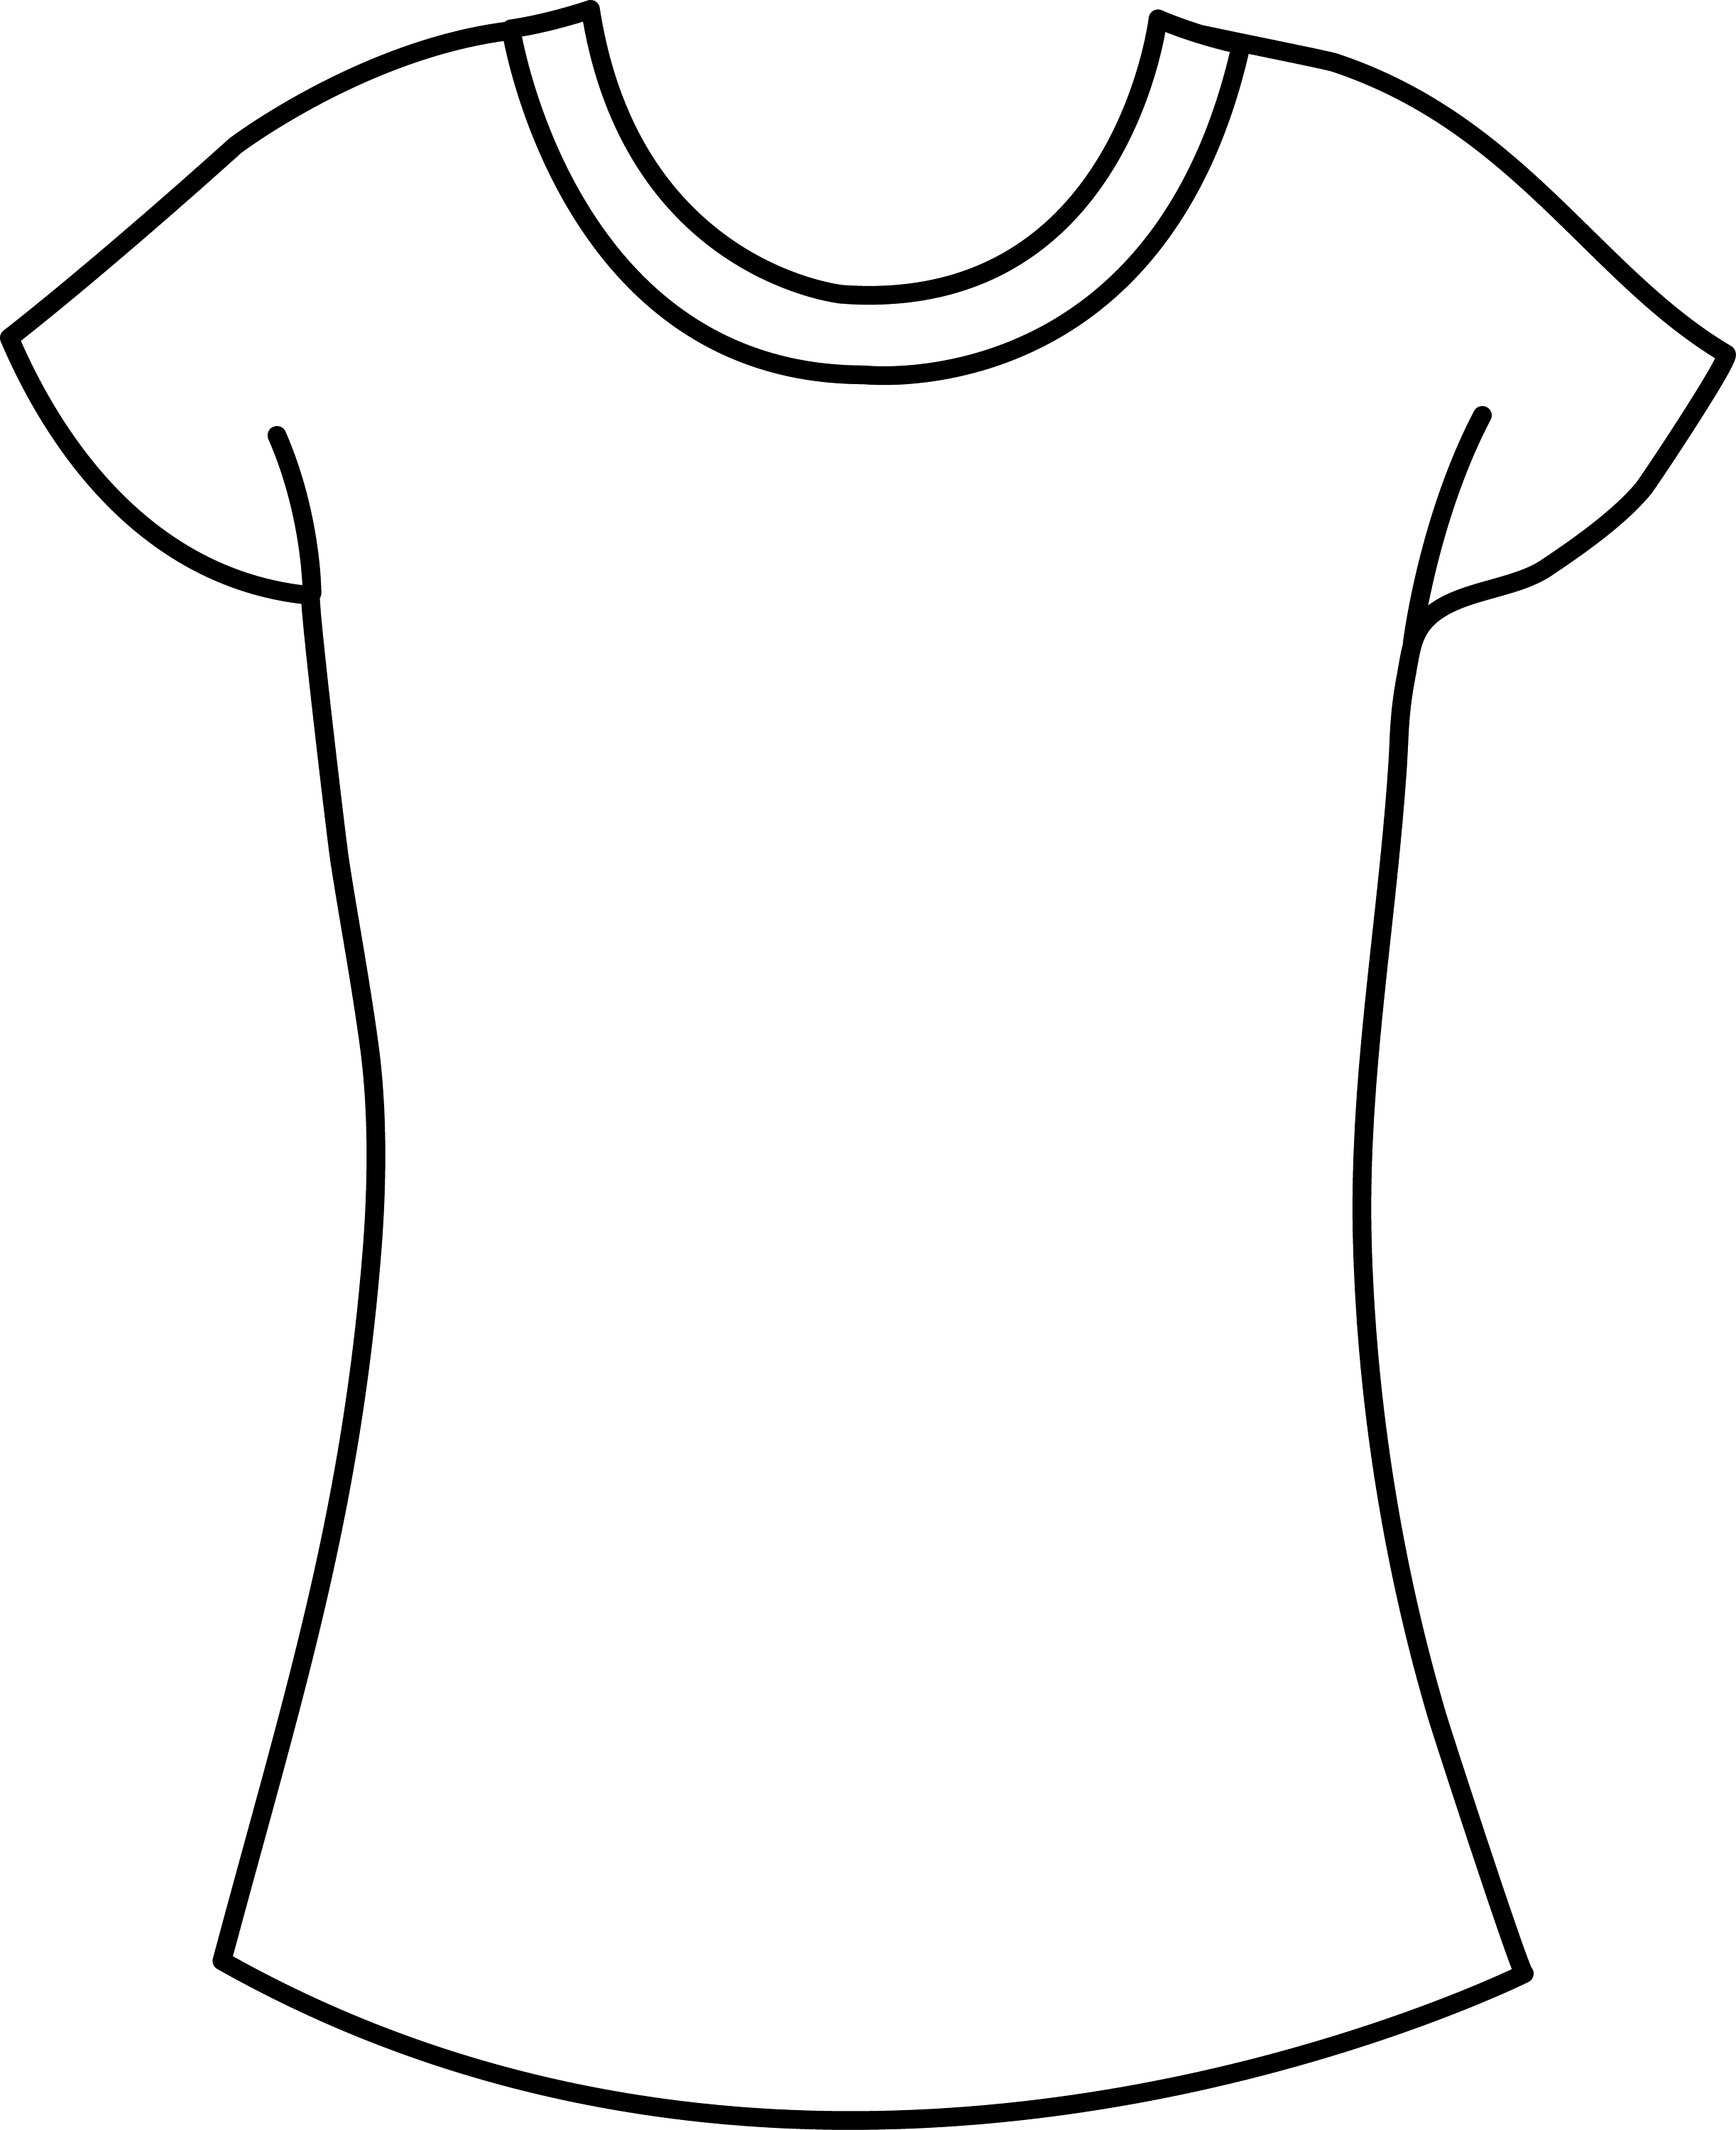 womens t shirt template free clip art